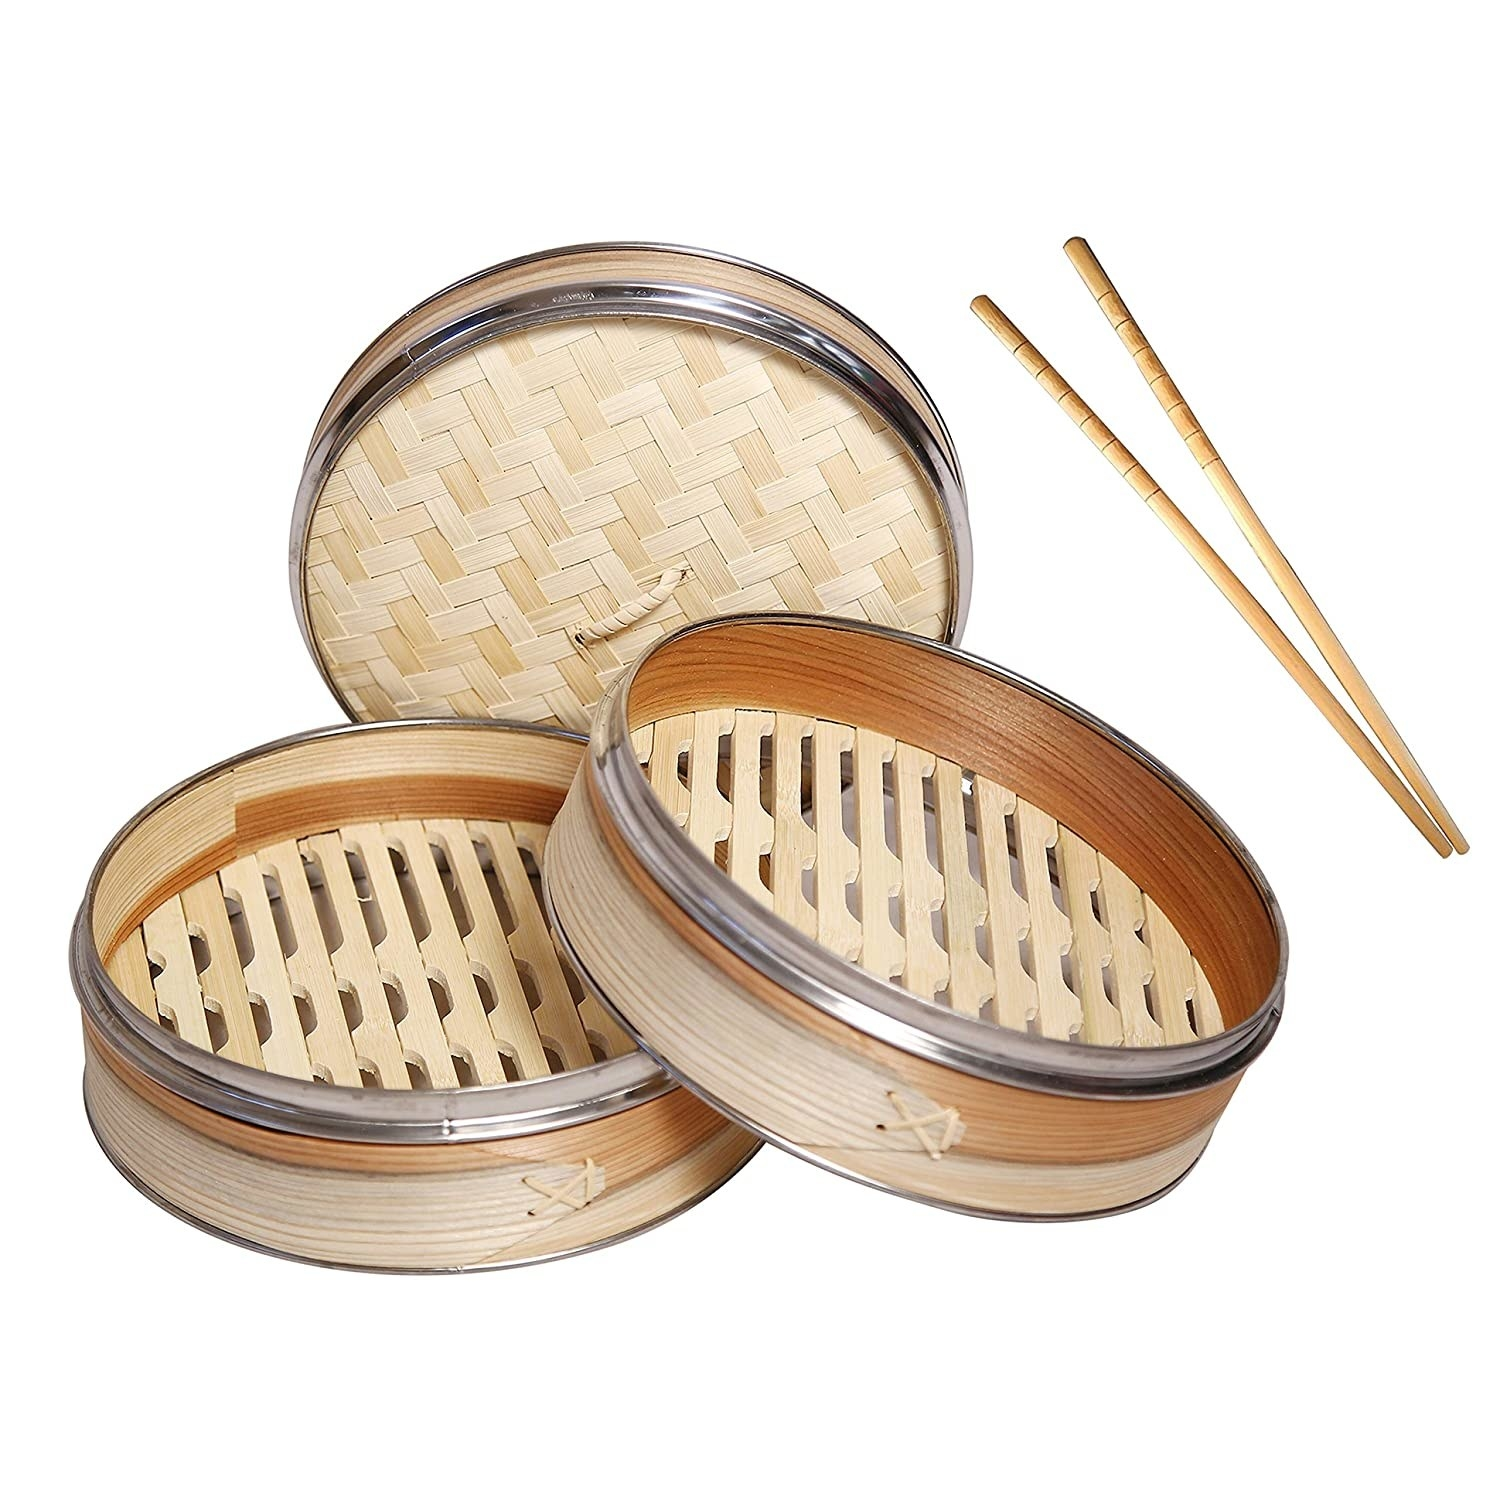 A two tier bamboo steamer